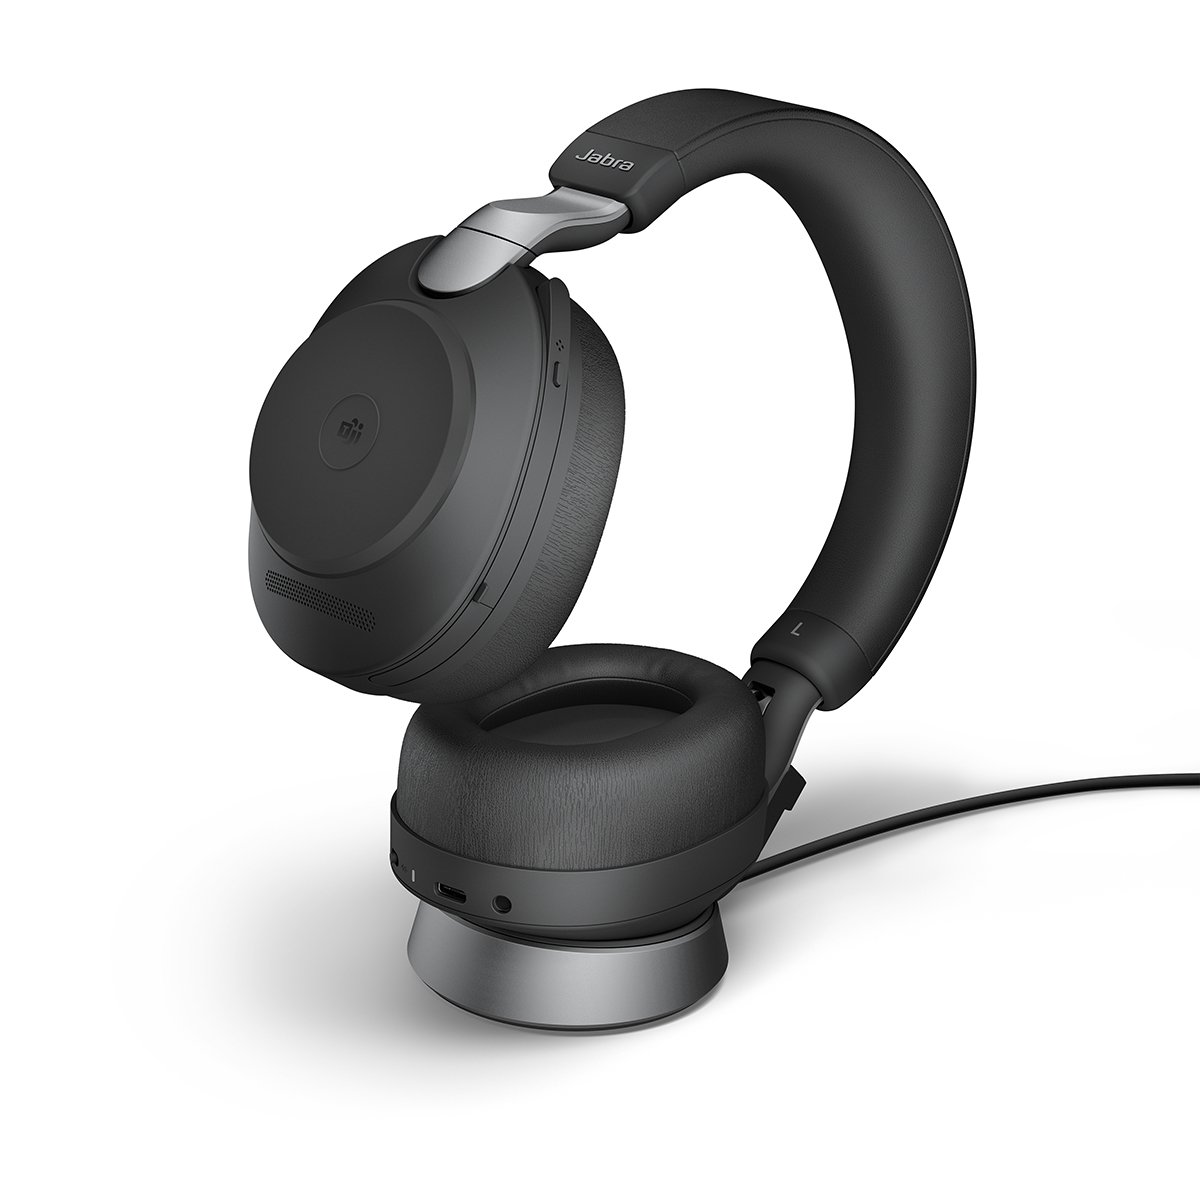 Jabra Evolve2 85 USB-C MS Stereo Headset and Charging Stand